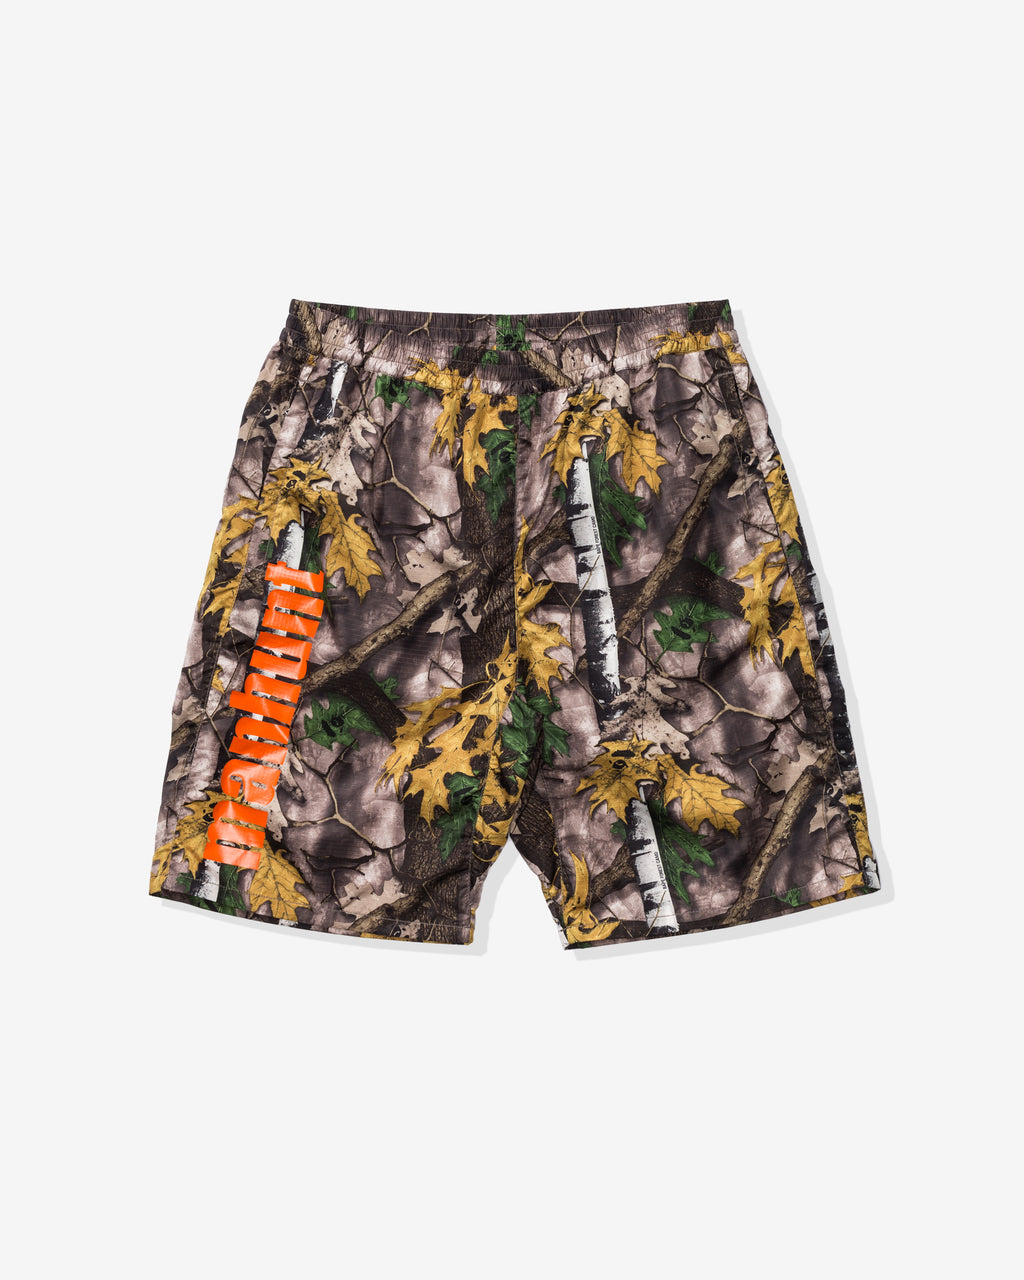 BAPE FOREST CAMO TRACK SHORTS - BEIGE